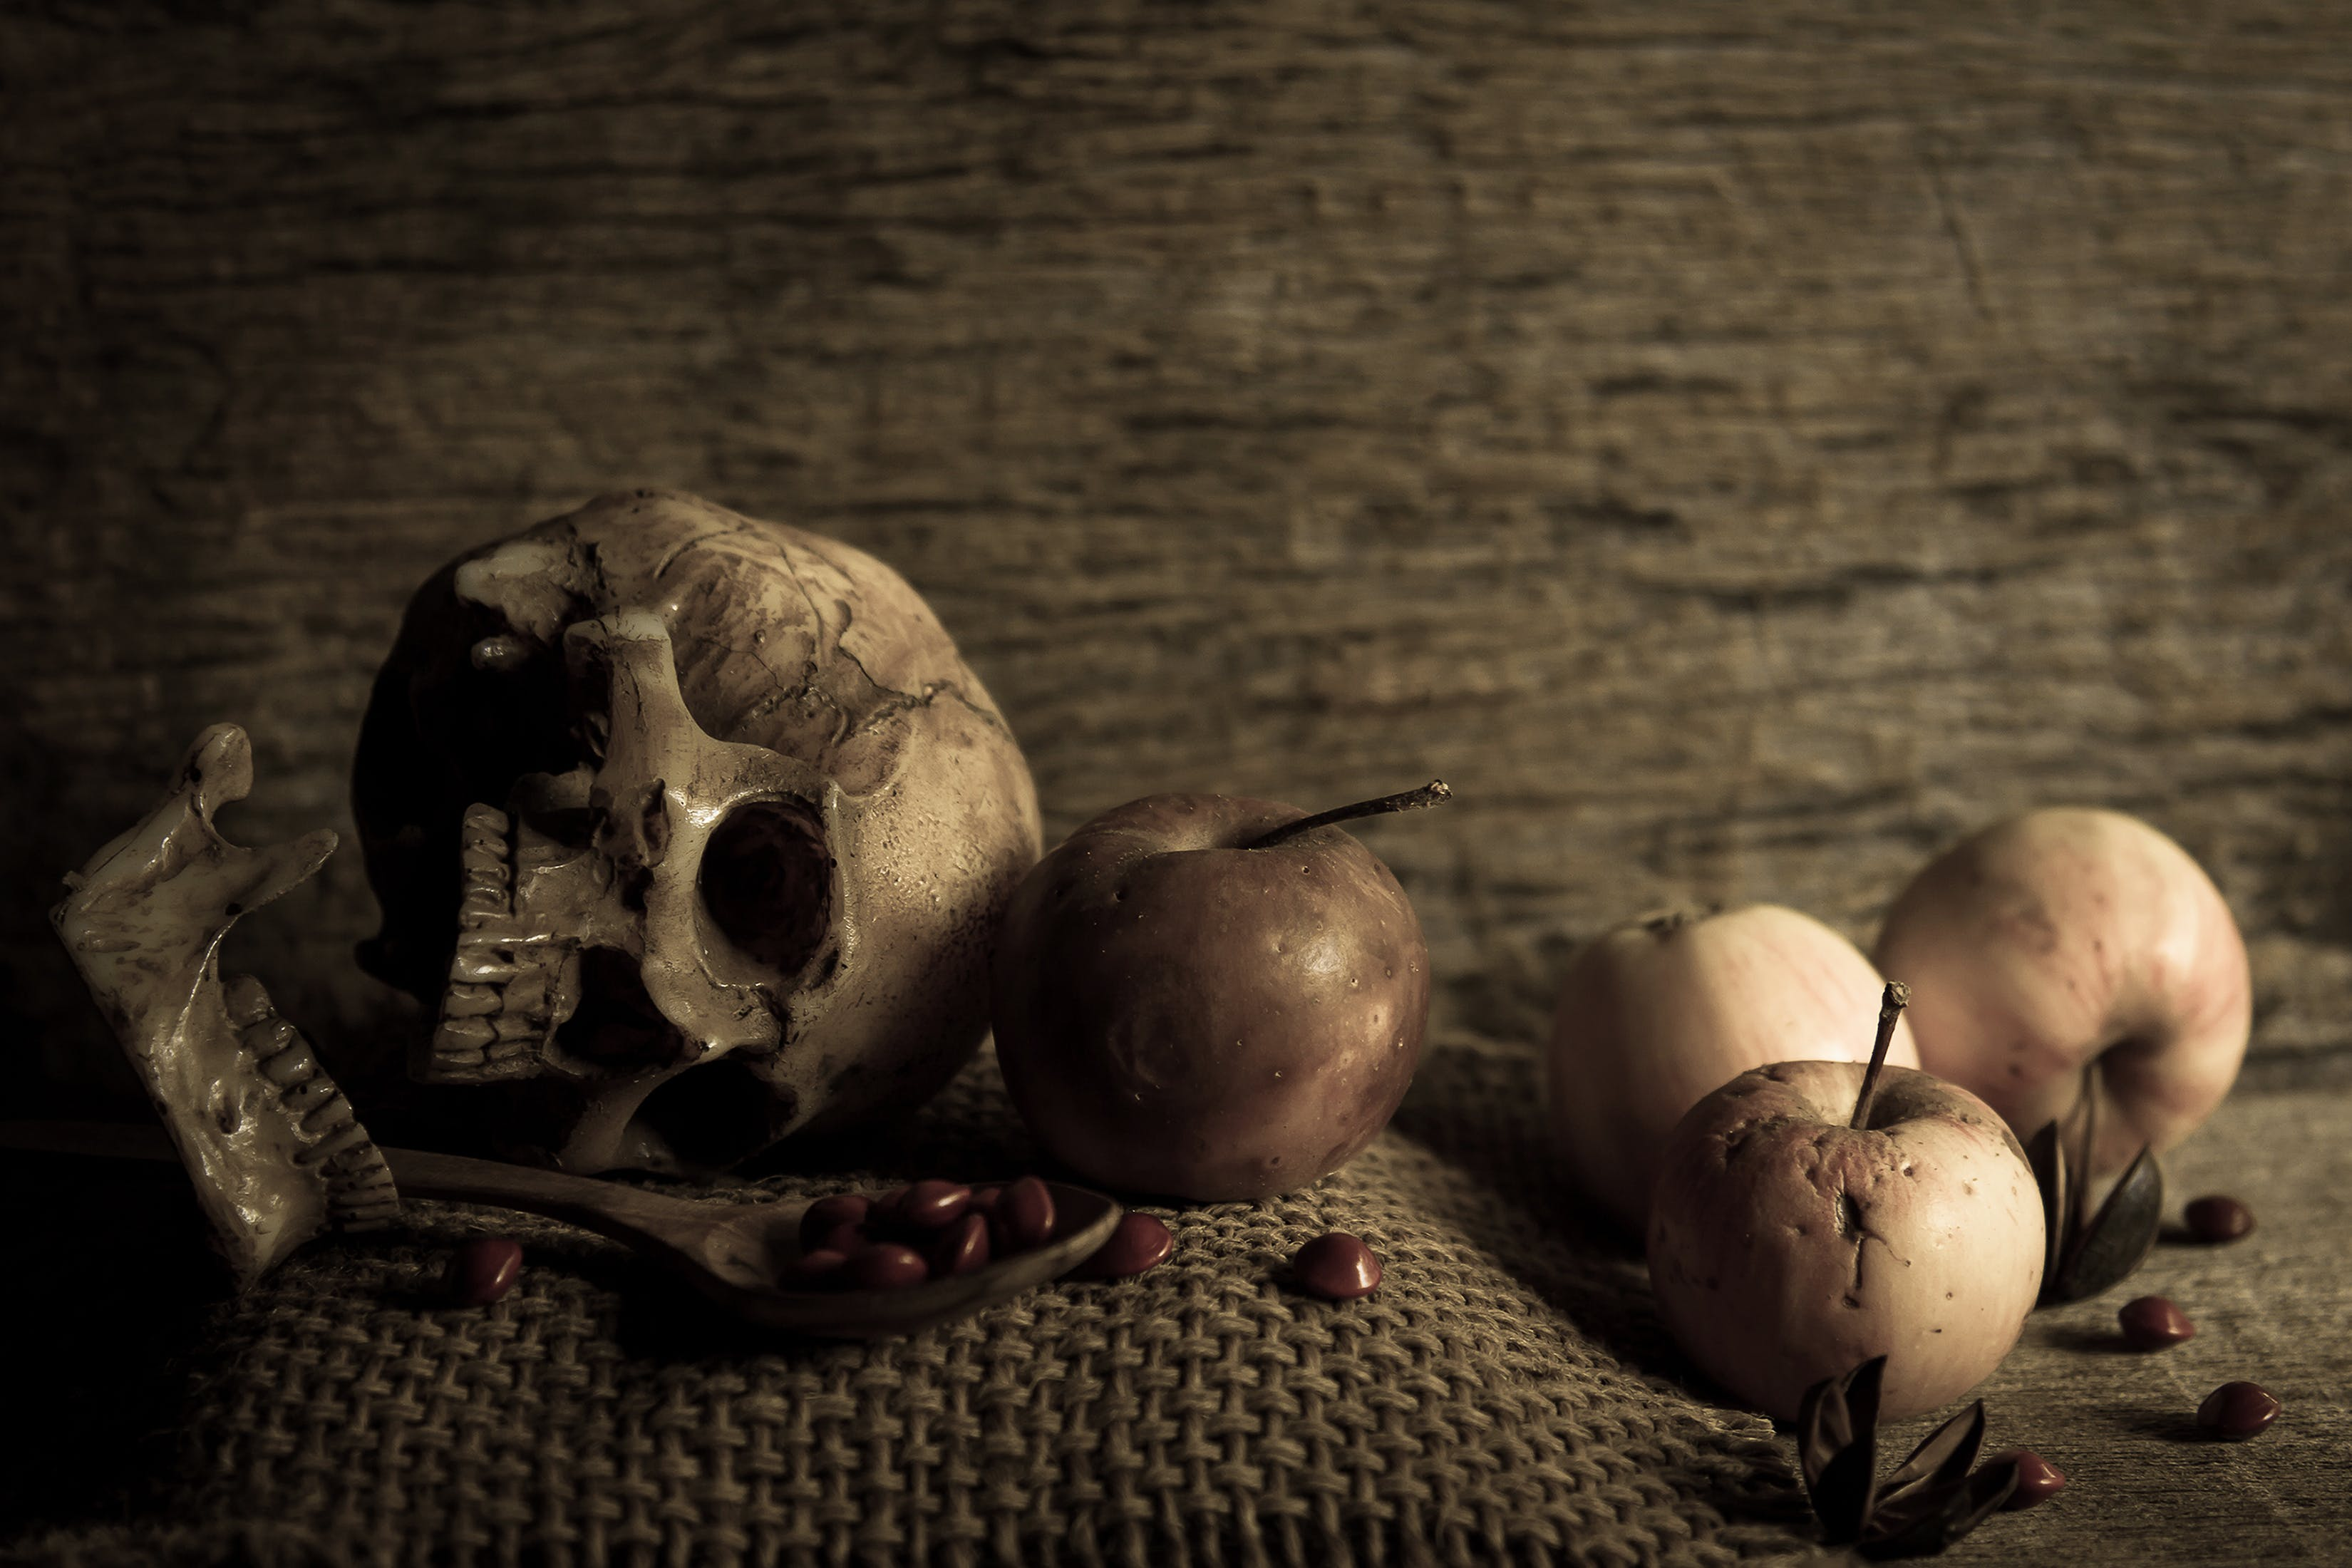 Broken Skull Beside Apples and Spoon